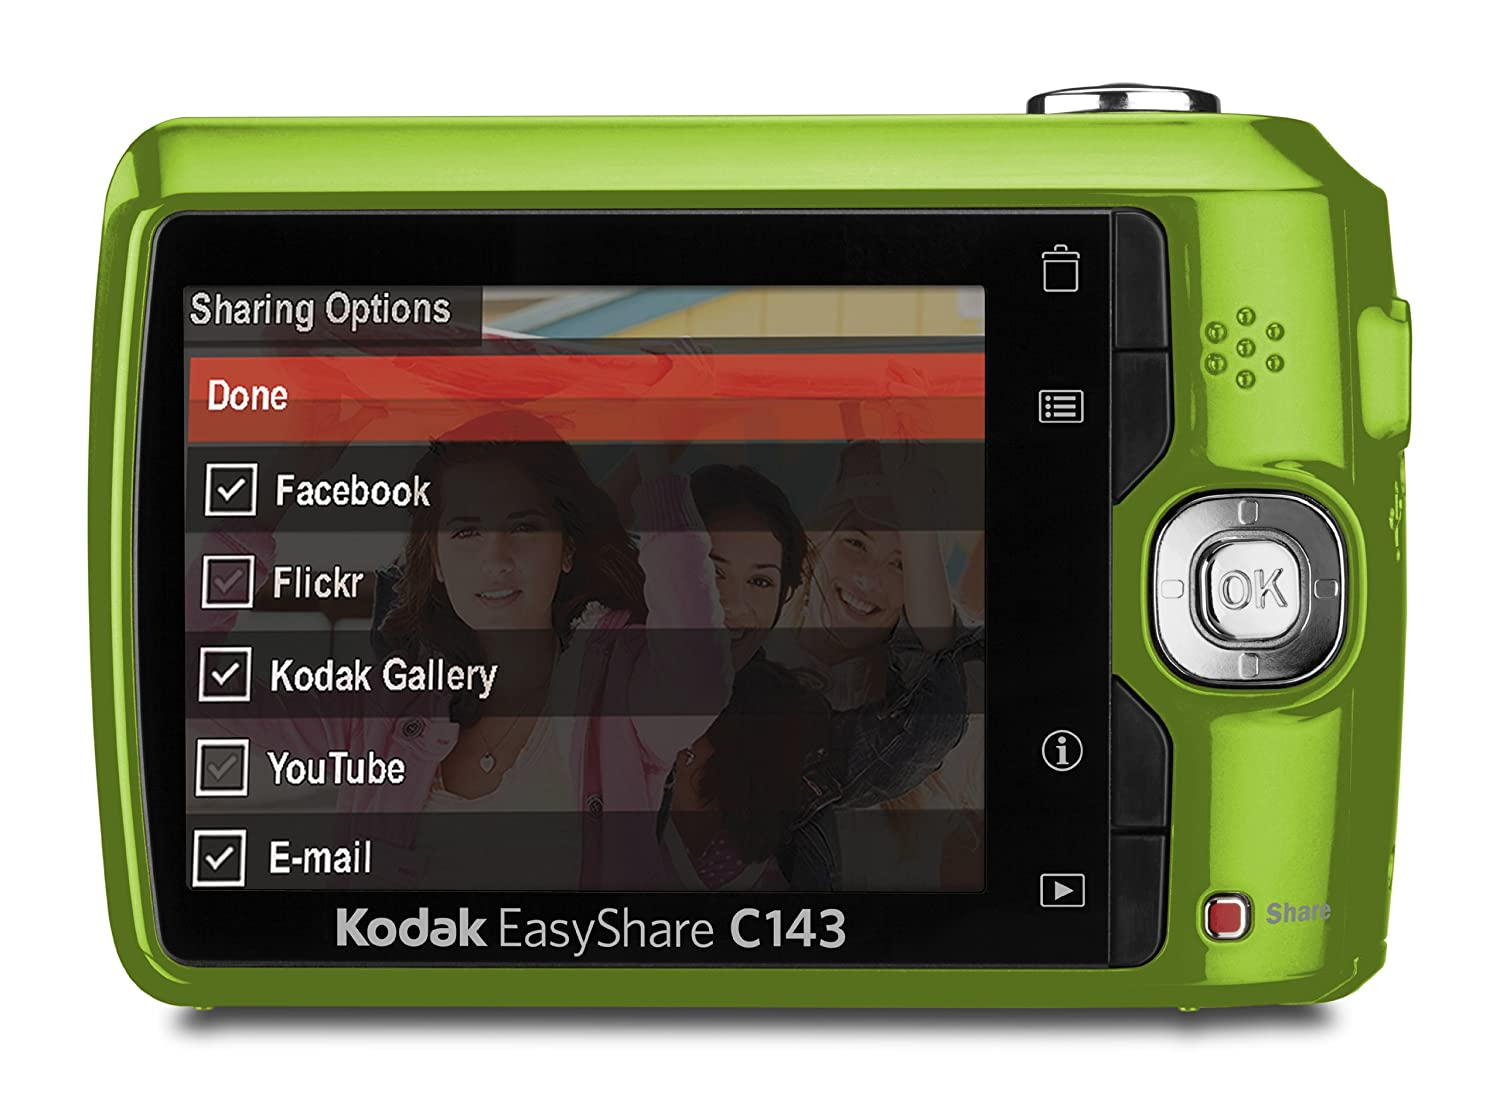 amazon com kodak easyshare c143 digital camera green point and rh amazon com kodak easyshare c143 user manual kodak easyshare c143 user manual